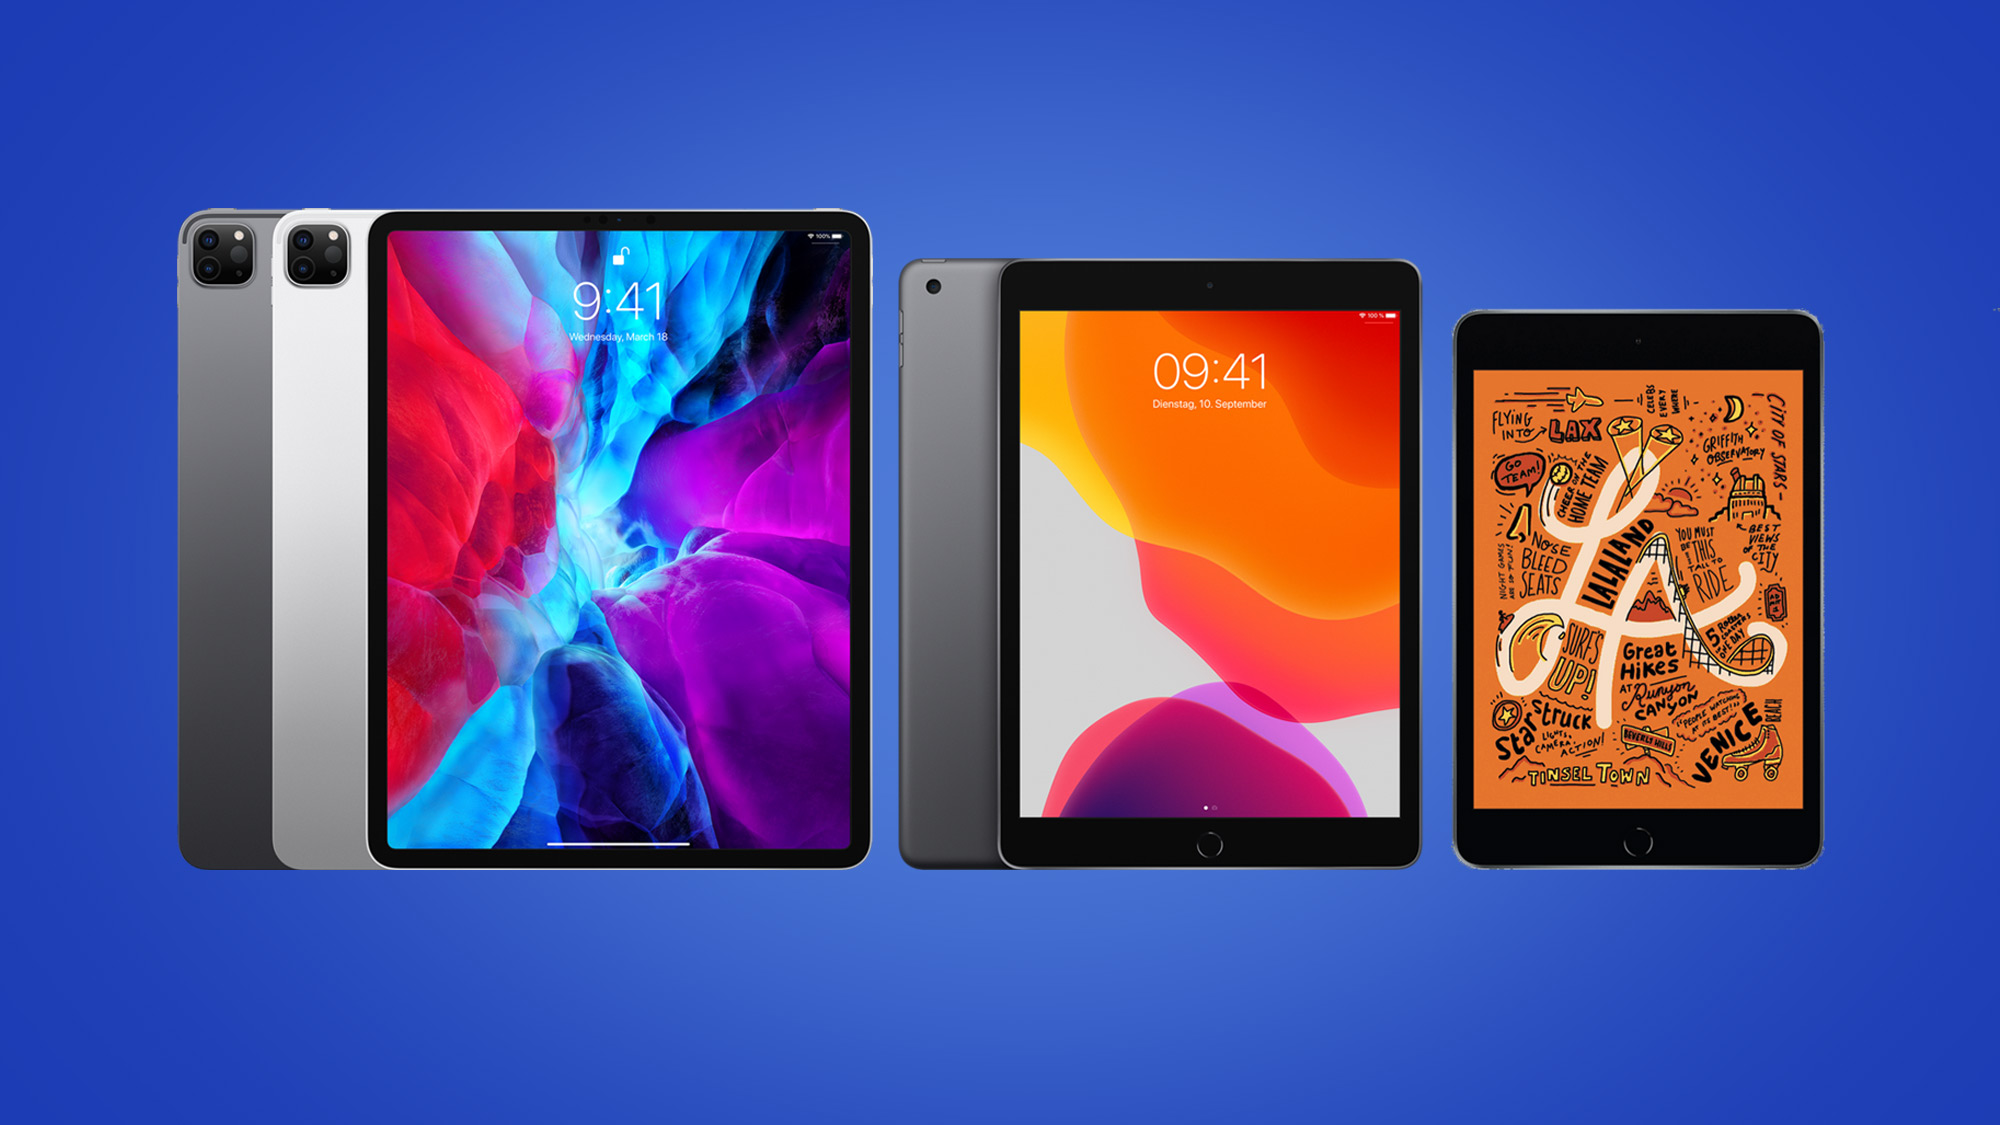 Will Apple Run Any Christmas Specials On Their Phones December 2020 The best cheap iPad deals in September 2020 | TechRadar